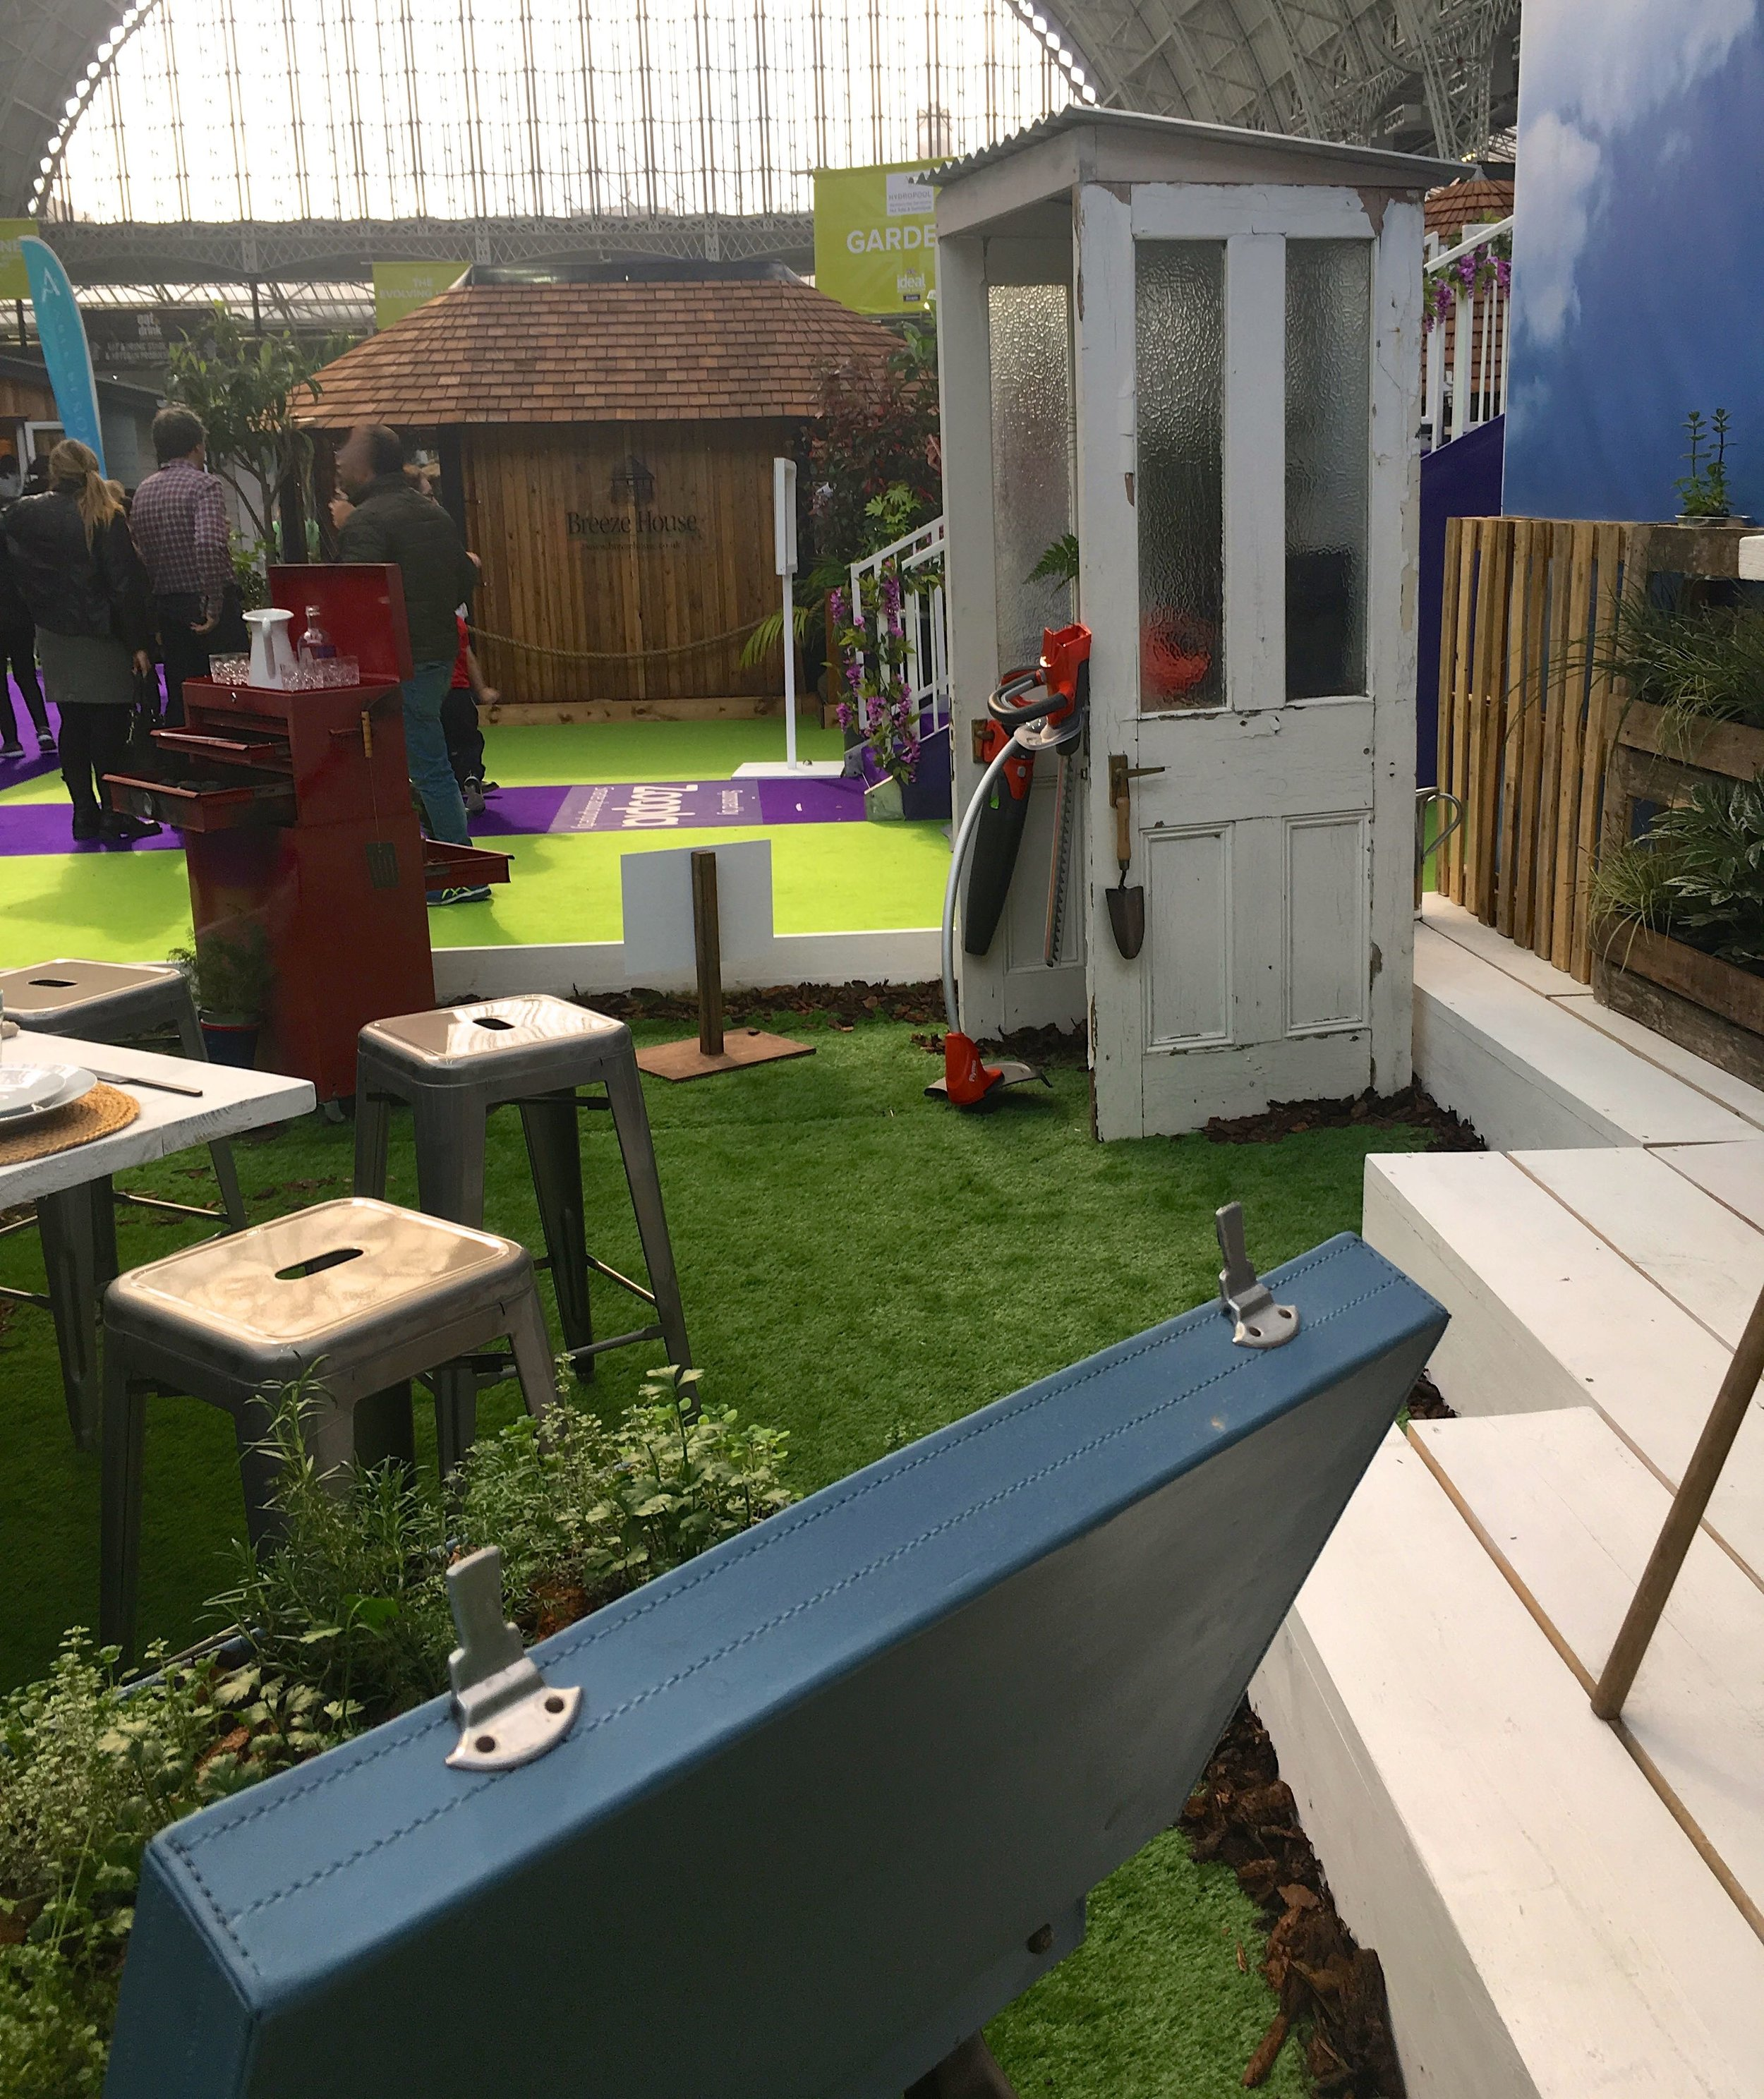 old doors and a suitcase put to good use in the Upcycled Garden at the Ideal Home Show